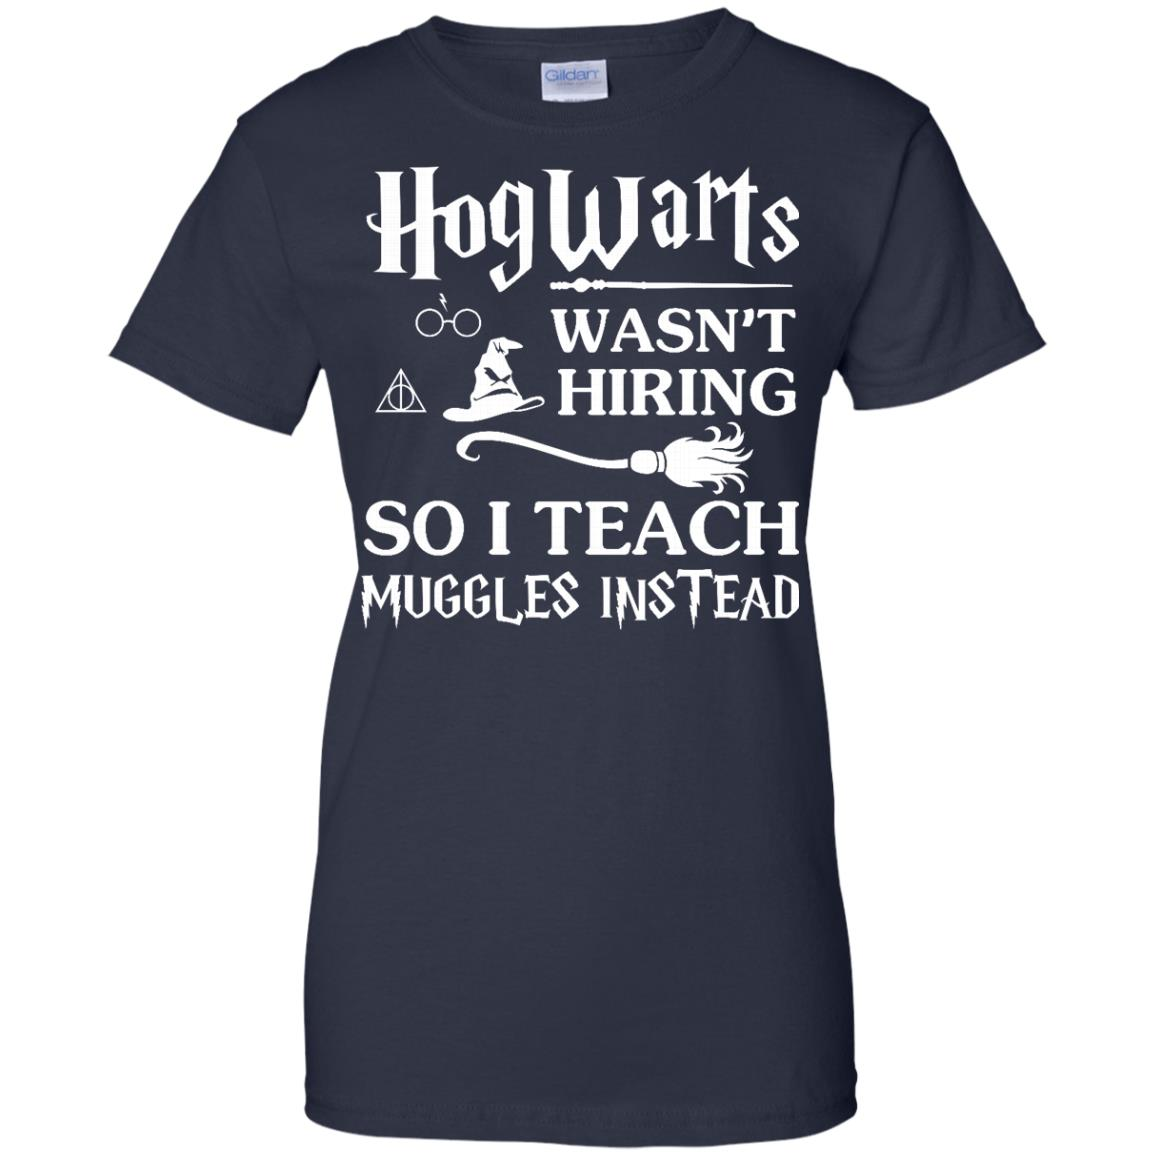 image 280px Hogwarts Wasn't Hiring So I Teach Muggles Instead T Shirts, Hoodies, Tank Top